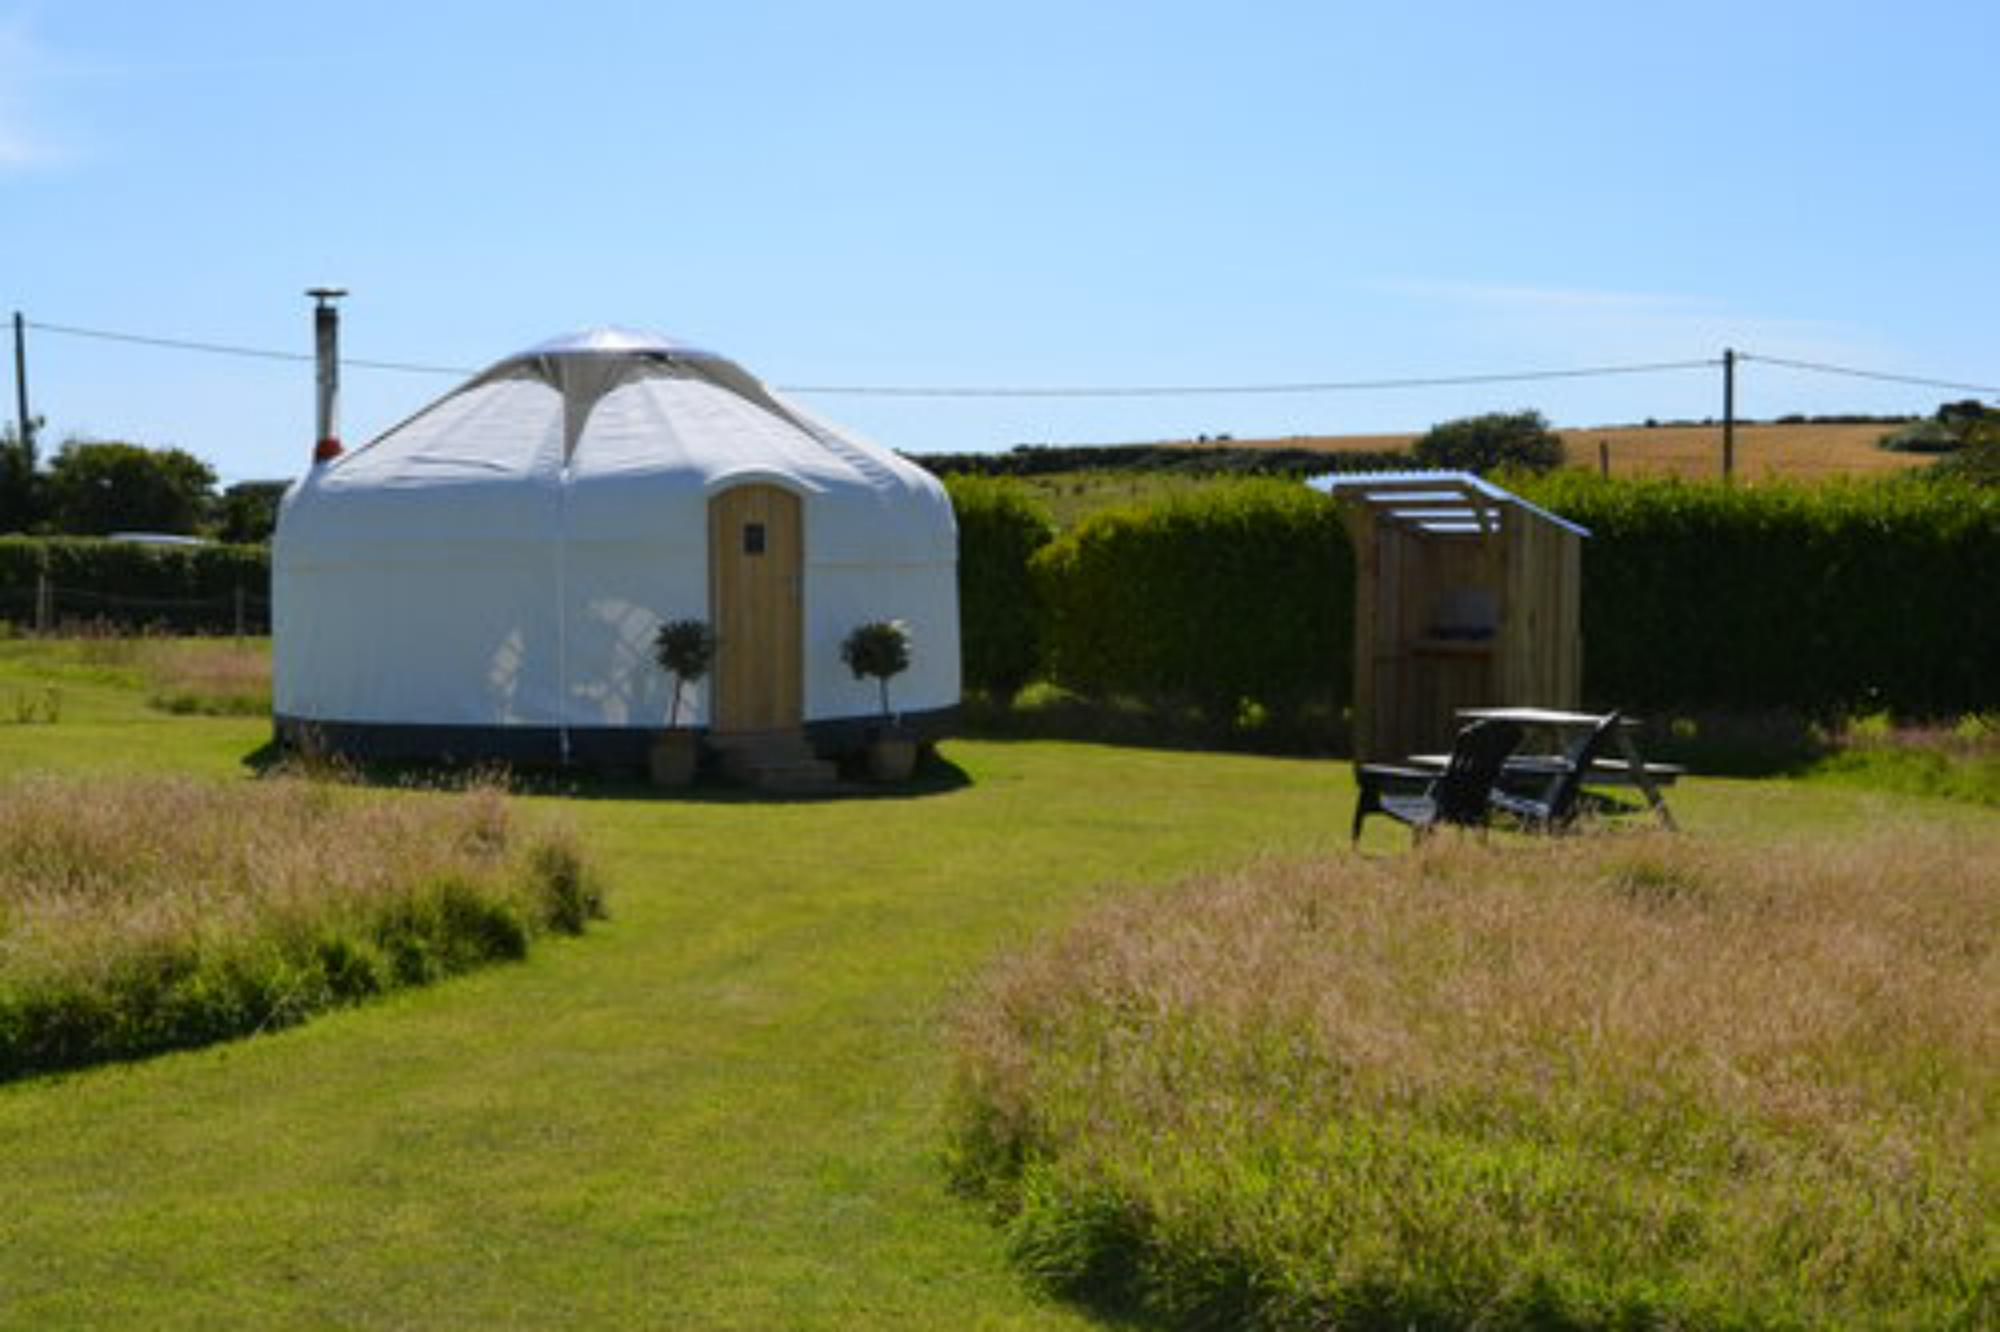 Outside, each yurt has a kitchen hut and a picnic table.